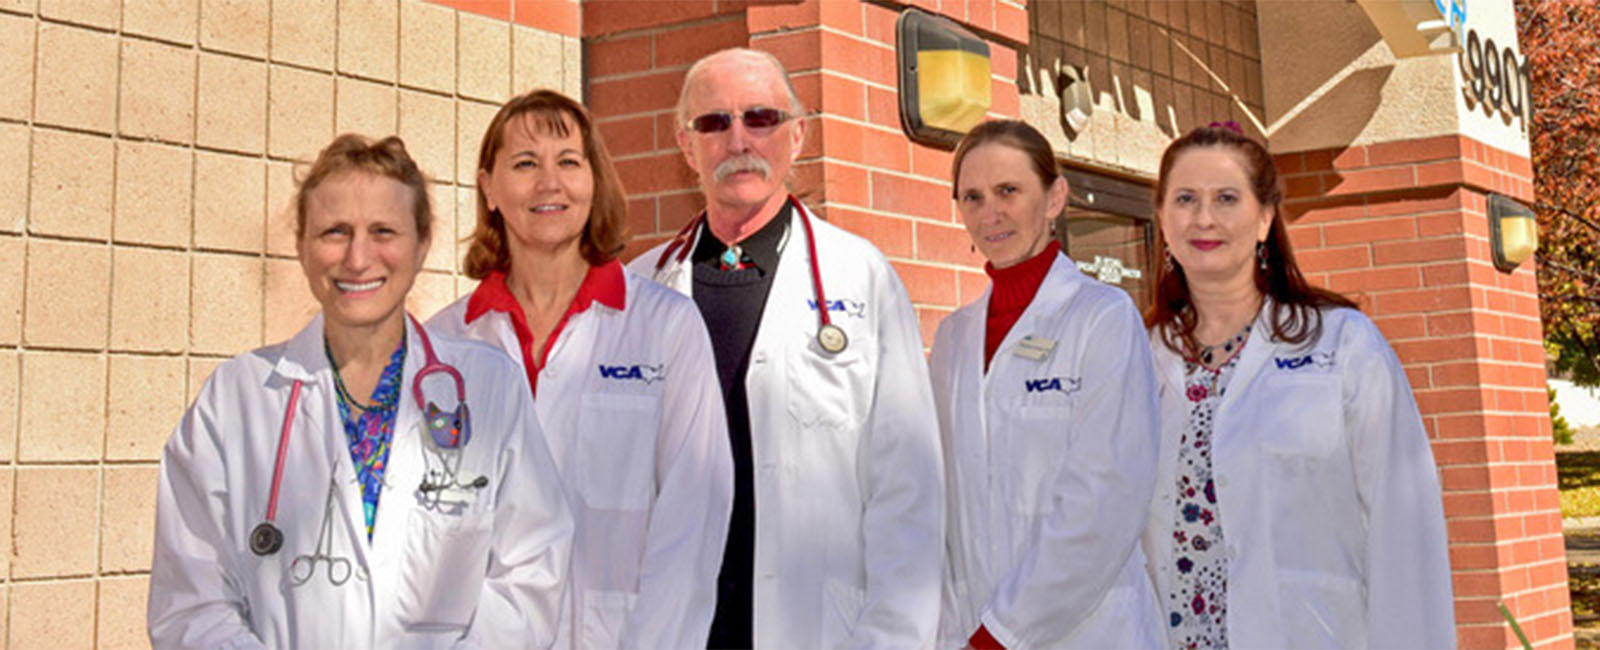 Homepage Team Picture of VCA Veterinary Care Animal Hospital and Referral Center